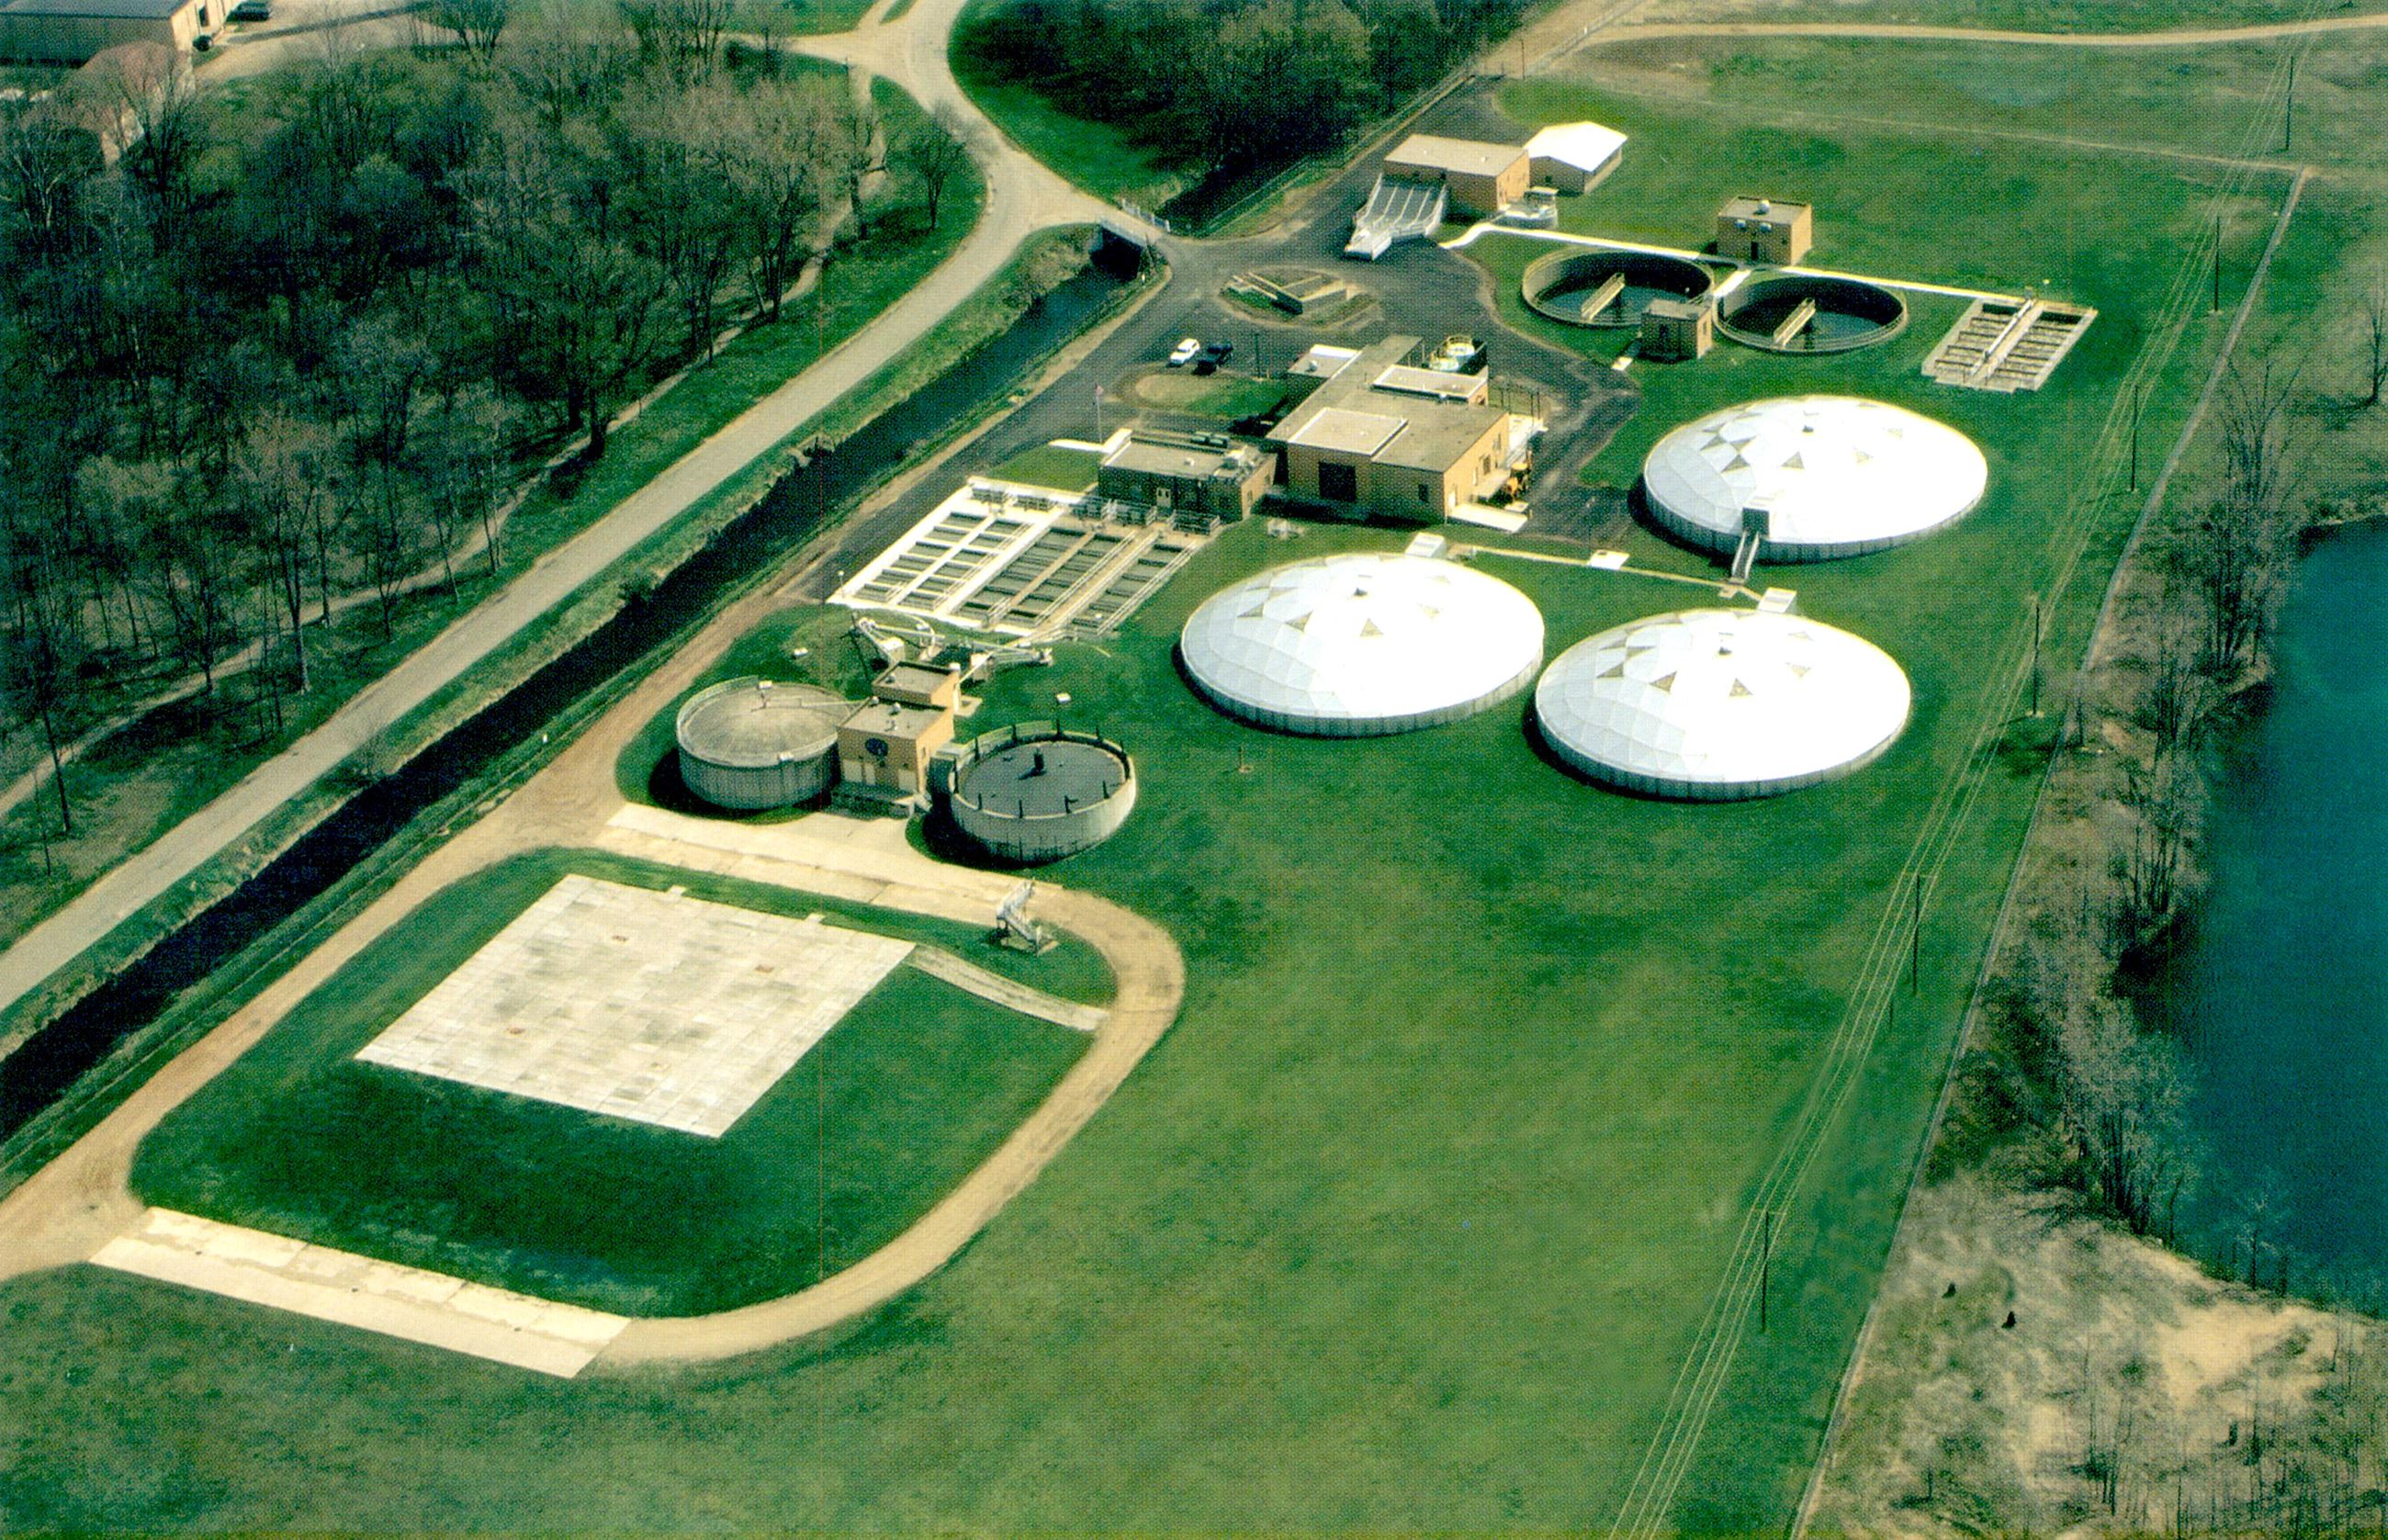 Aerial View of the Wastewater Treatment Plant